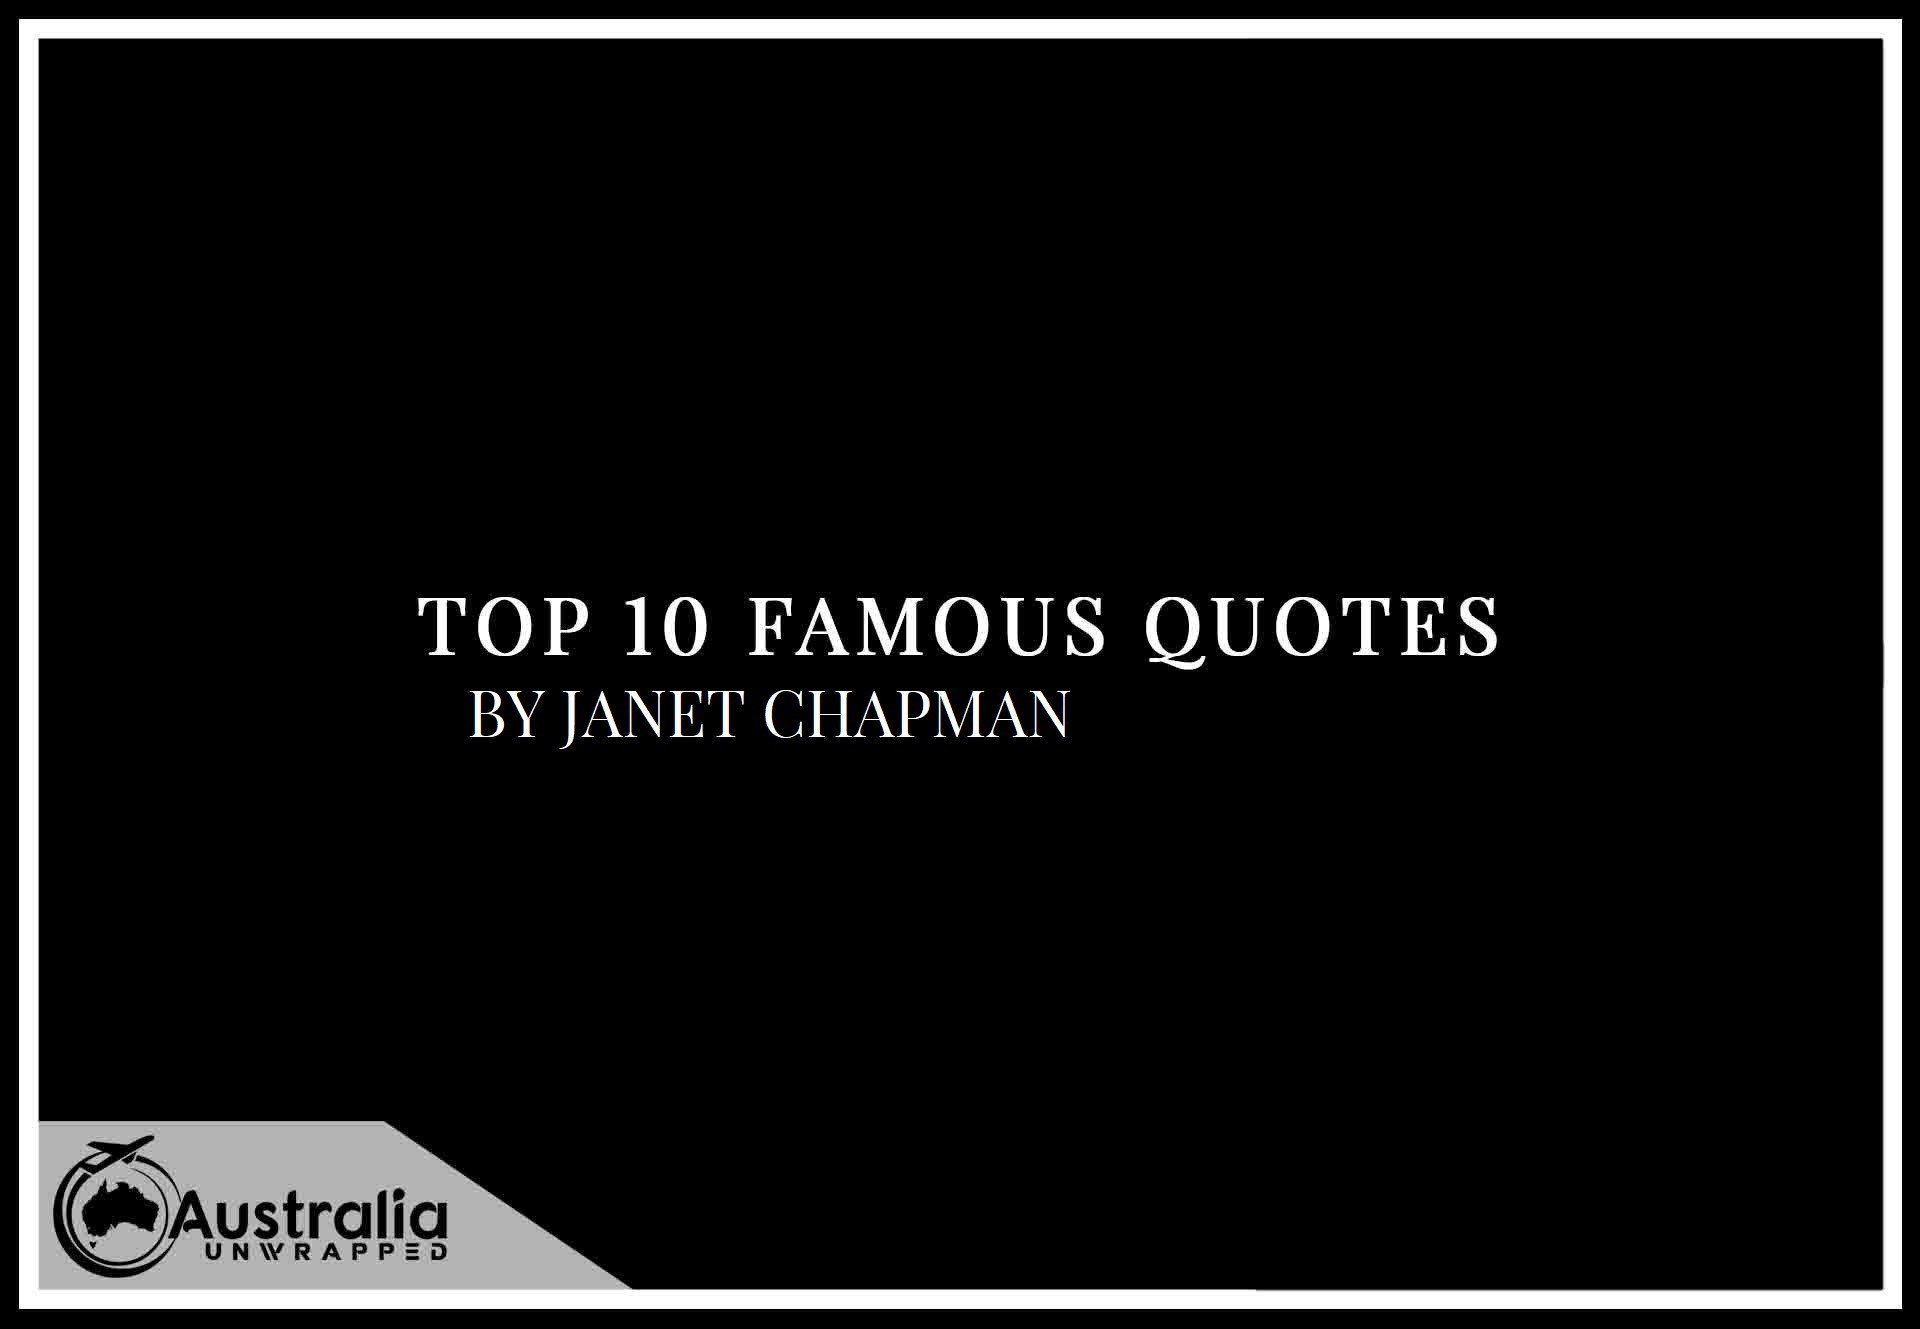 Top 10 Famous Quotes by Author Janet Chapman